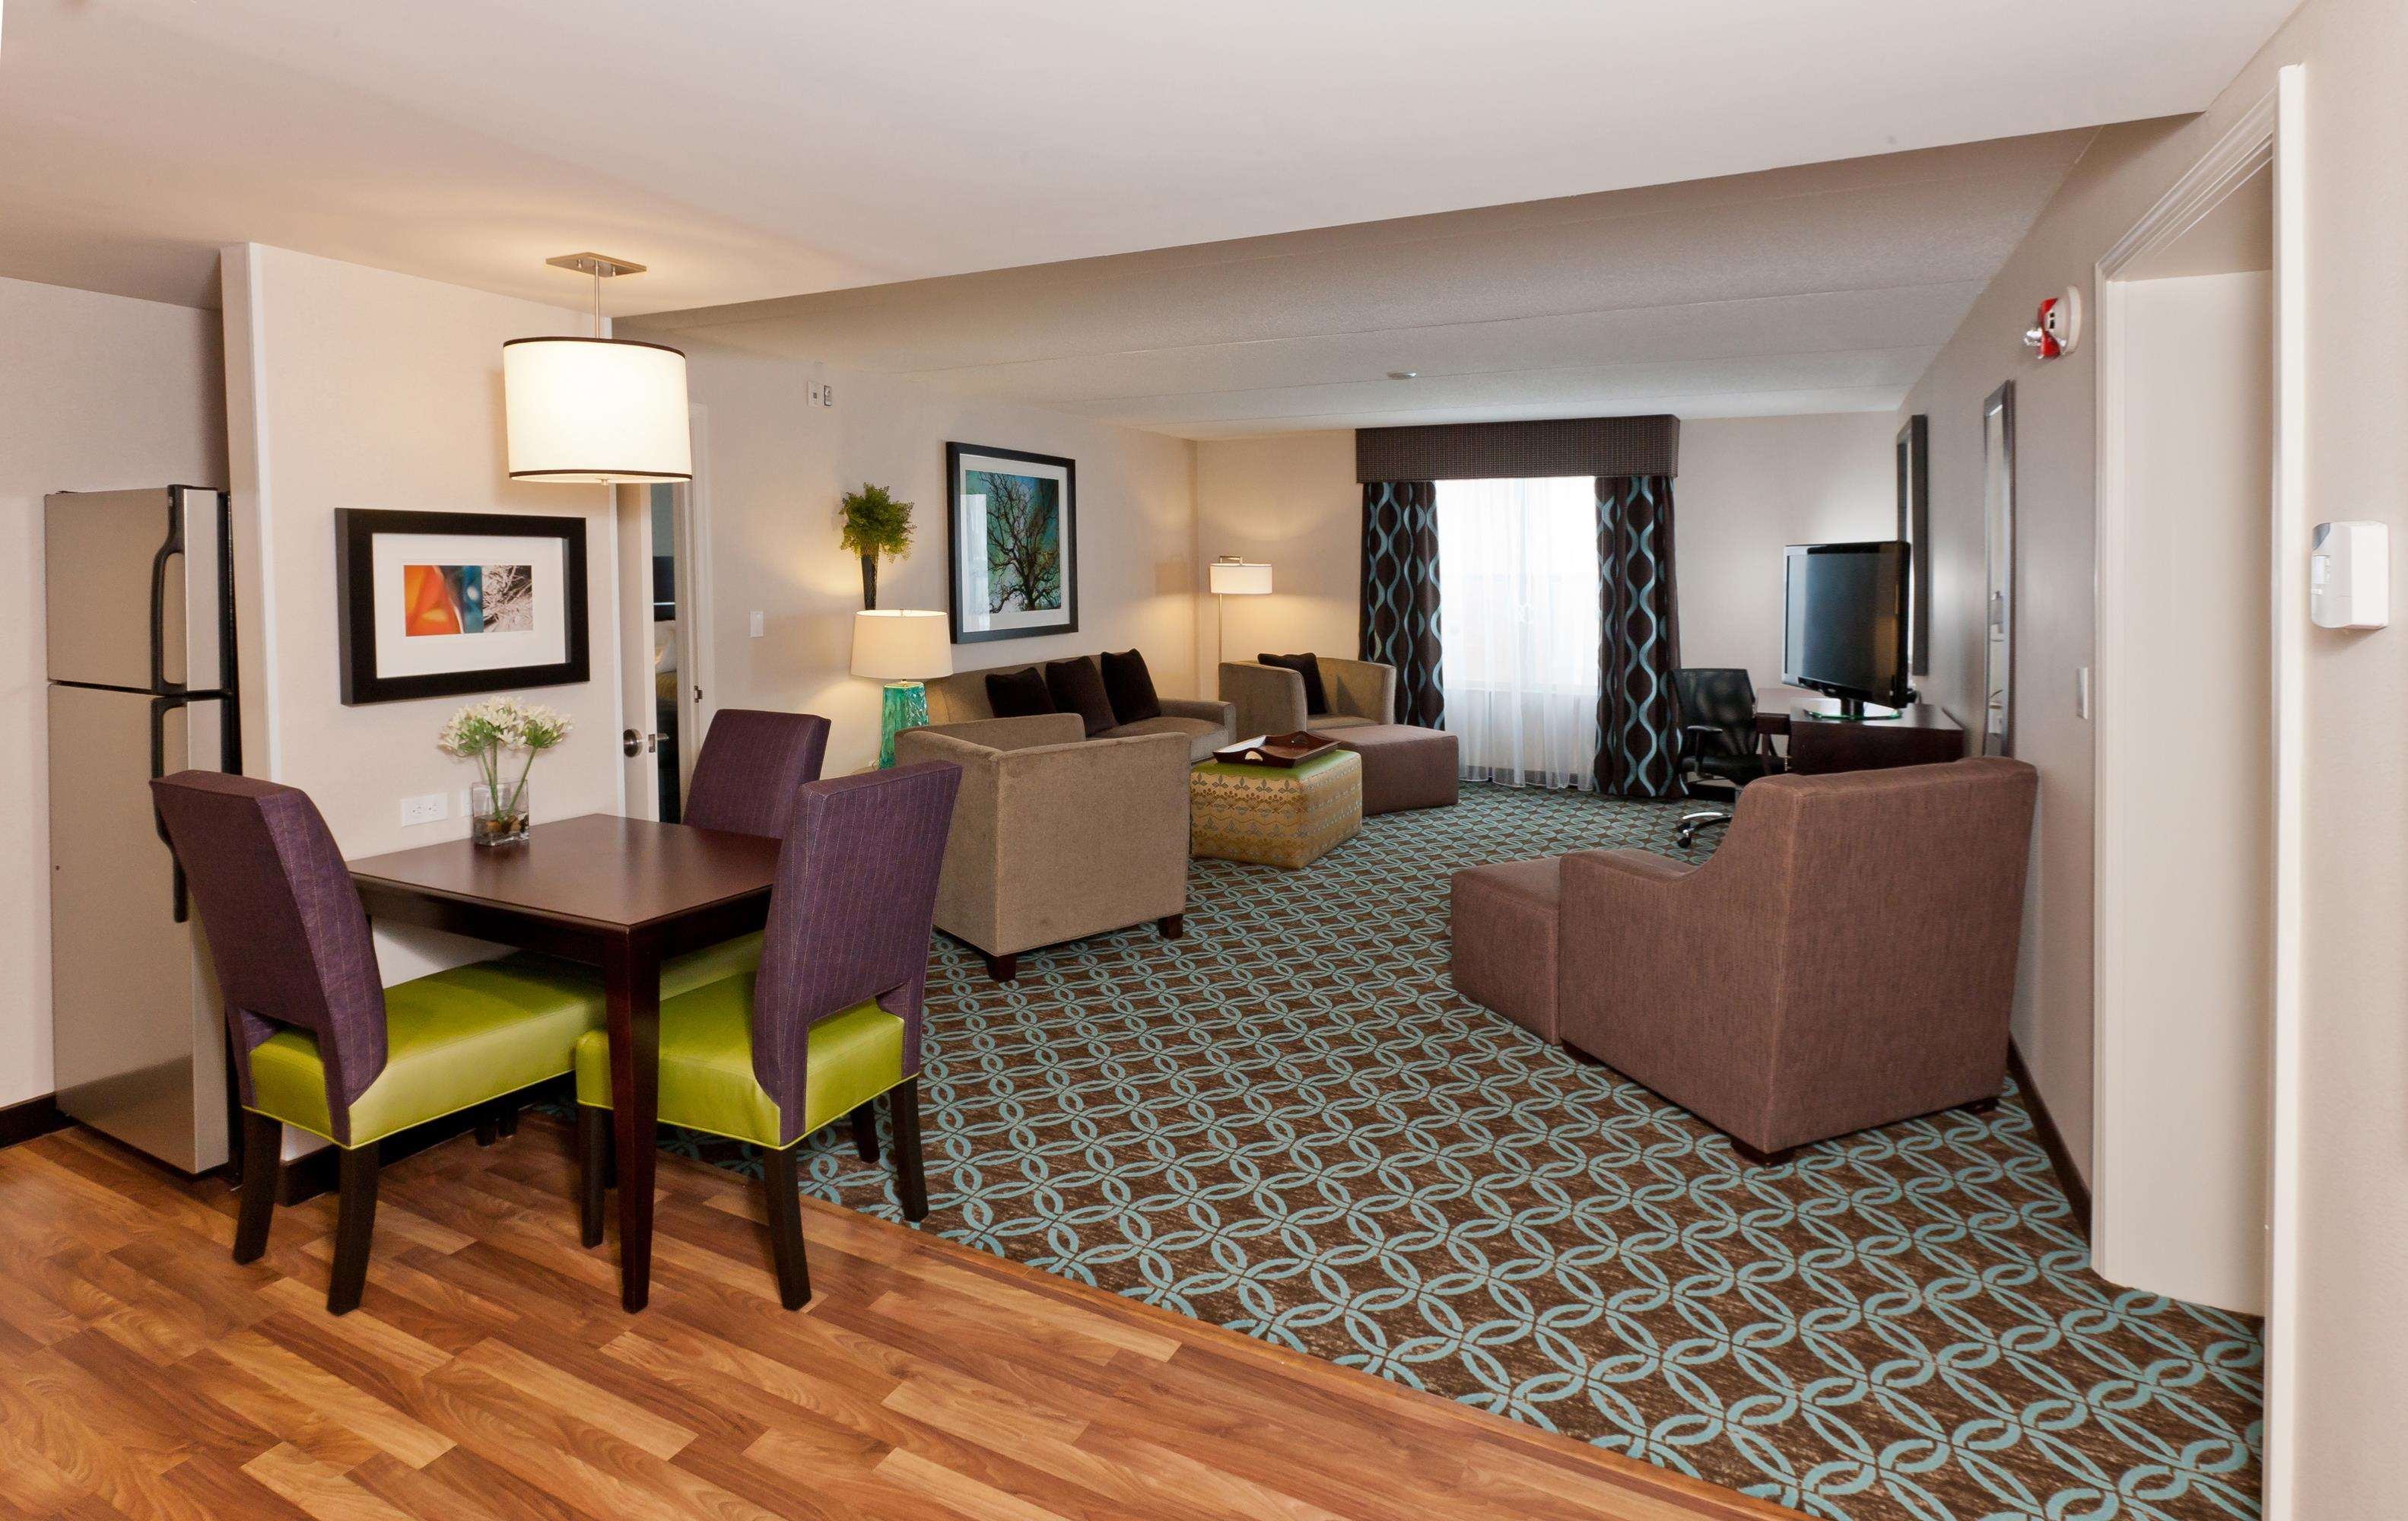 Homewood Suites by Hilton Boston/Canton, MA image 28